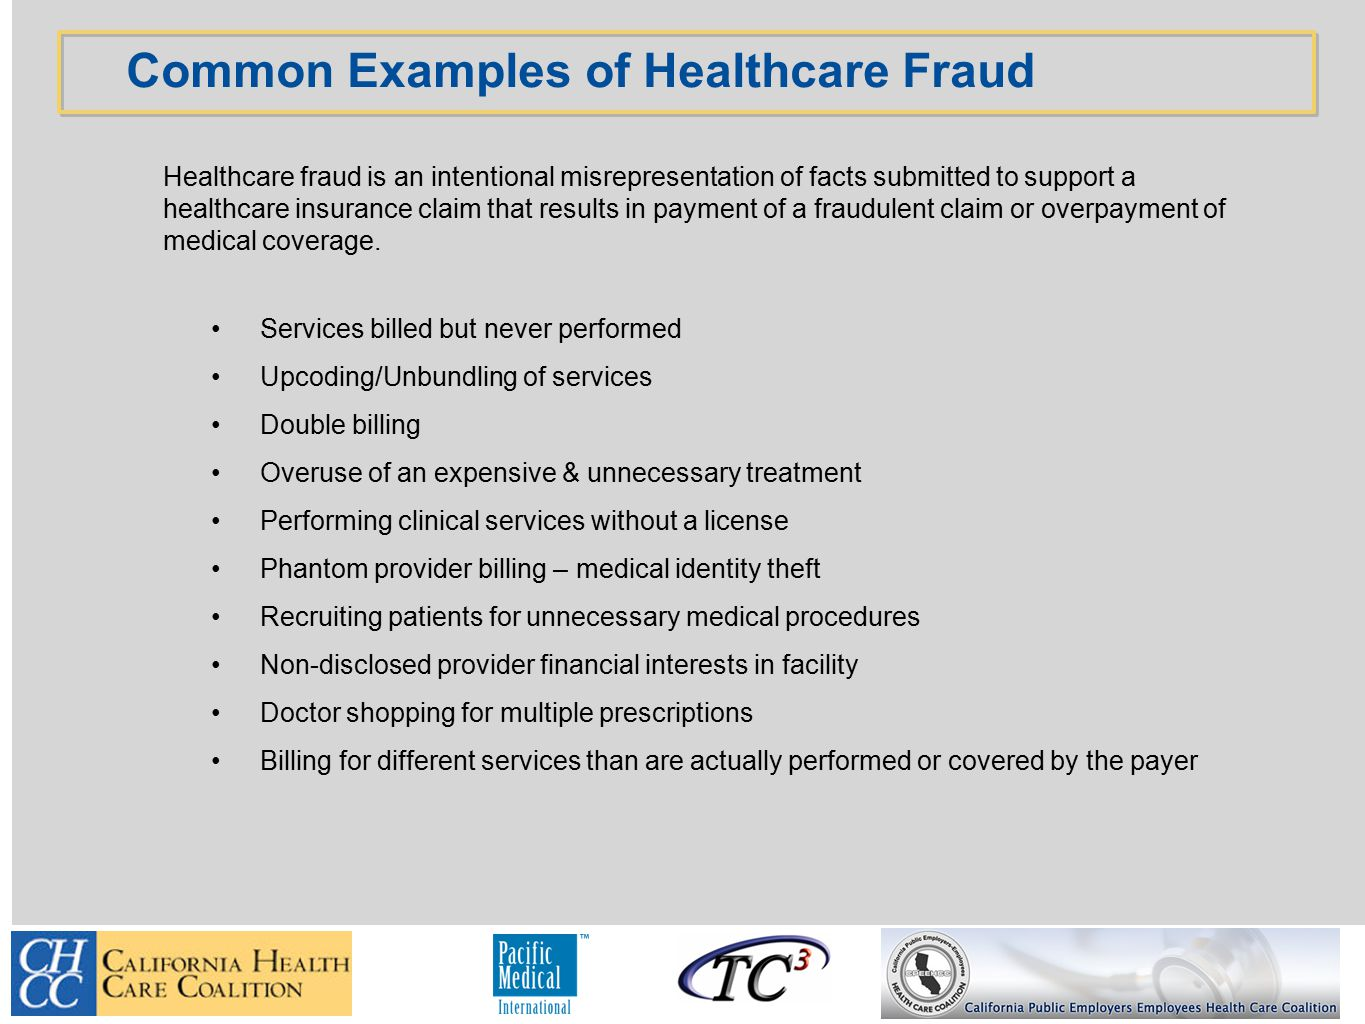 Healthcare fraud is an intentional misrepresentation of facts submitted to support a healthcare insurance claim that results in payment of a fraudulent claim or overpayment of medical coverage.